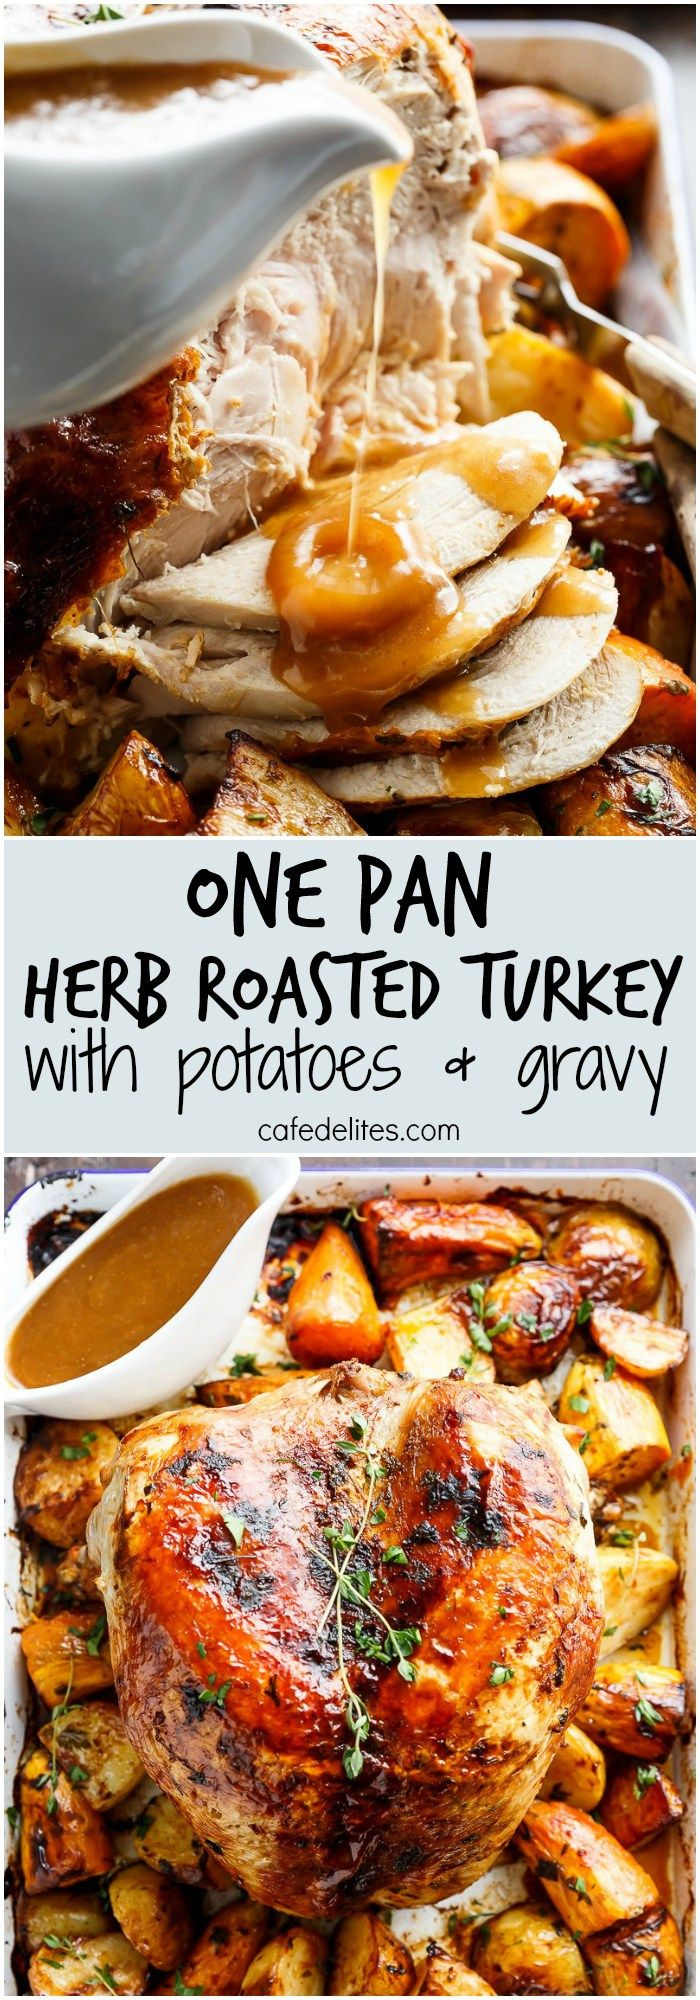 One Pan Juicy Herb Roasted Turkey & Potatoes, with a flavourful gravy made with only 3 ingredients, just in time for Thanksgiving menu planning!   http://cafedelites.com